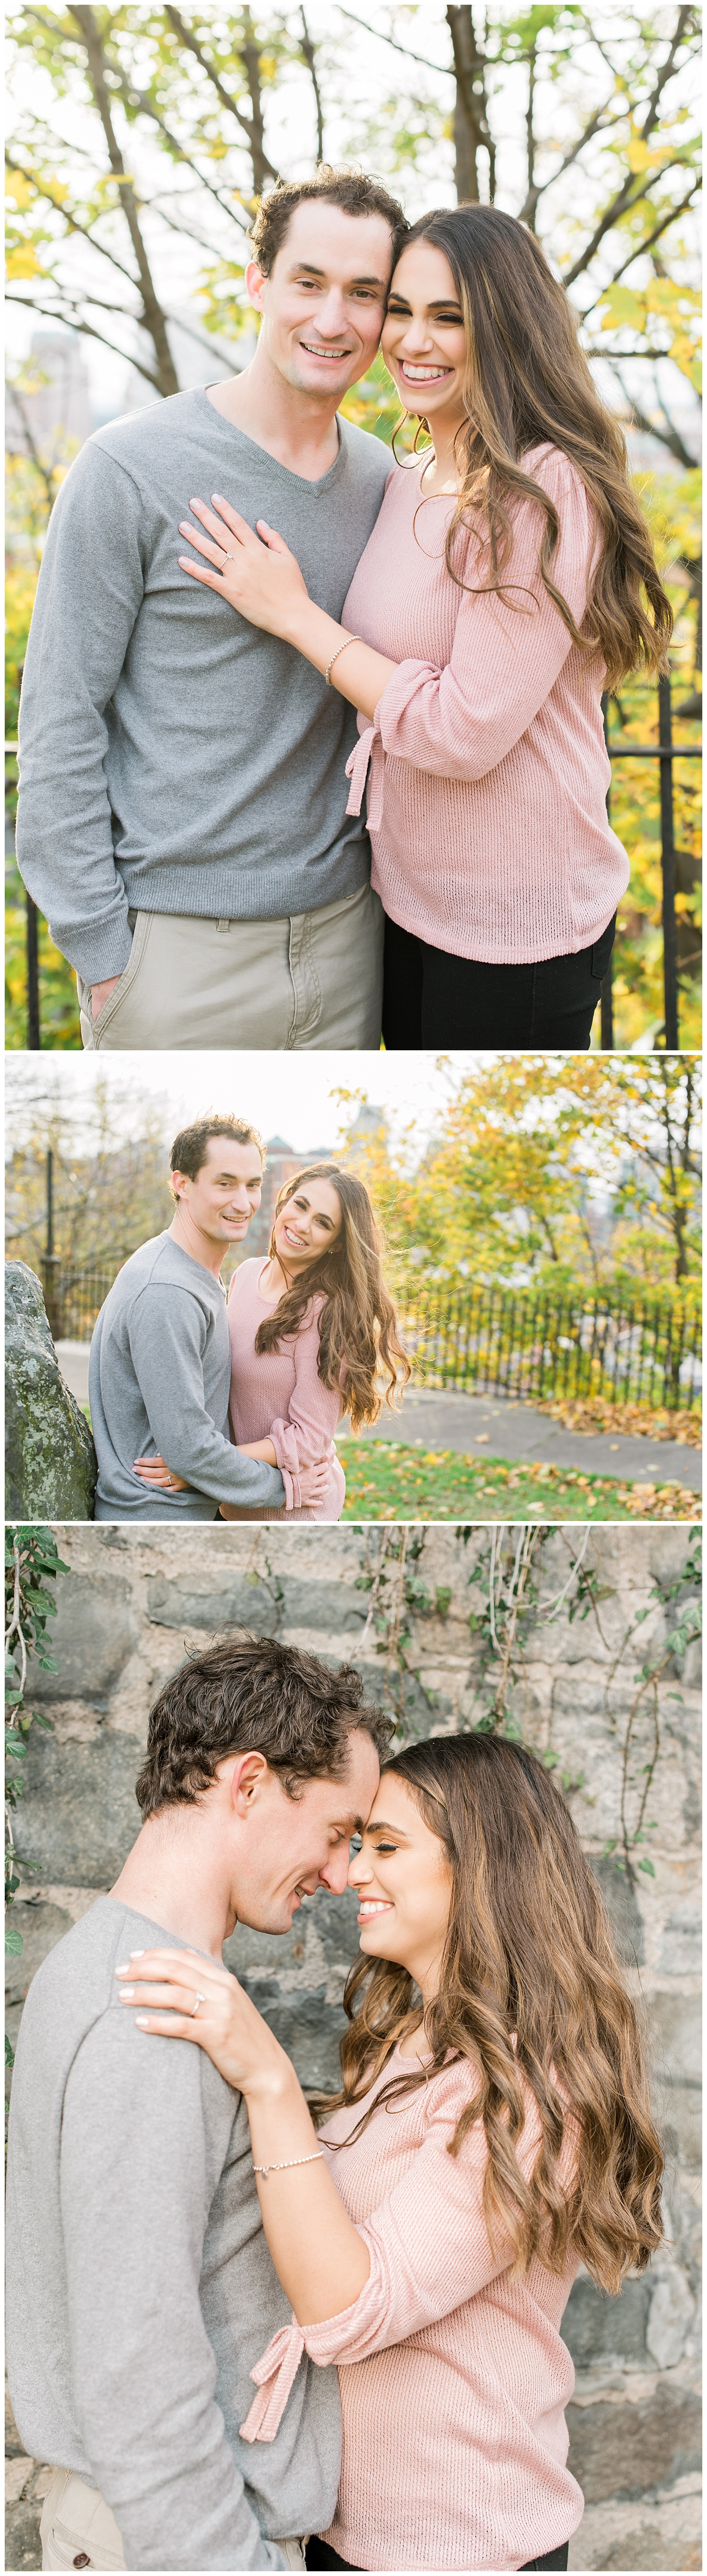 east-side-providence-fall-engagement-session-photos-7.jpg